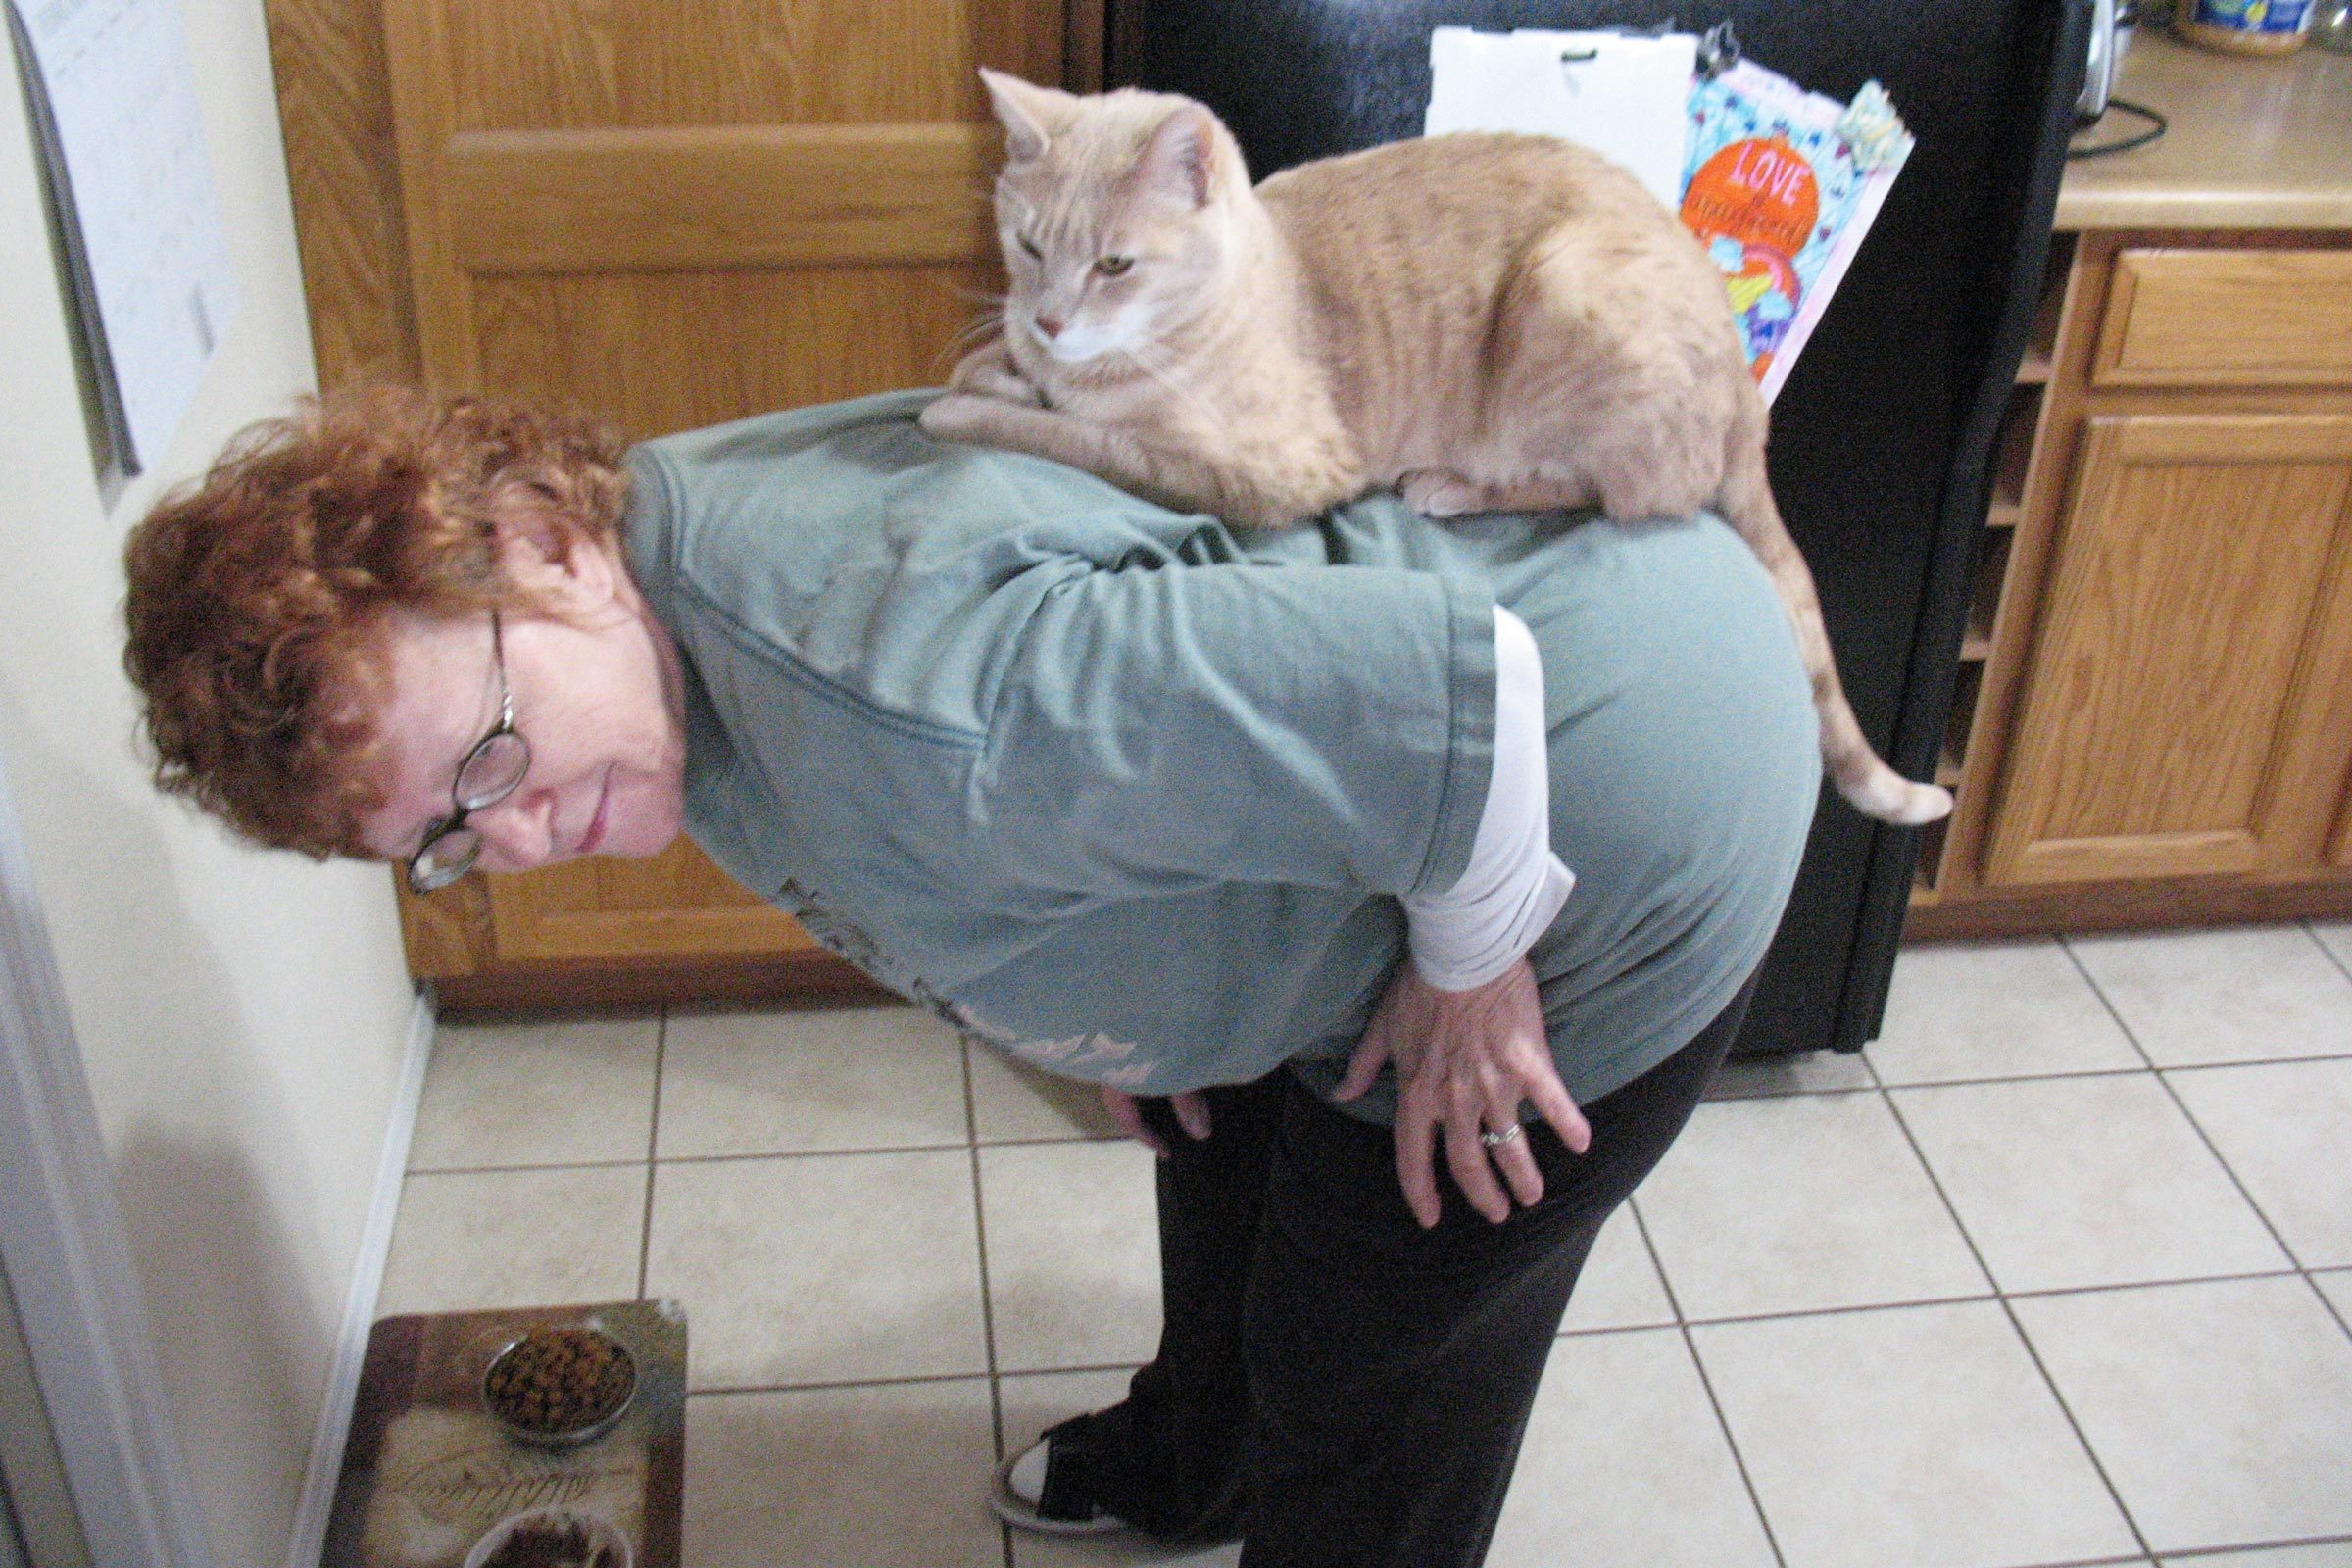 a woman bent over in the kitchen with a cat seated on her back